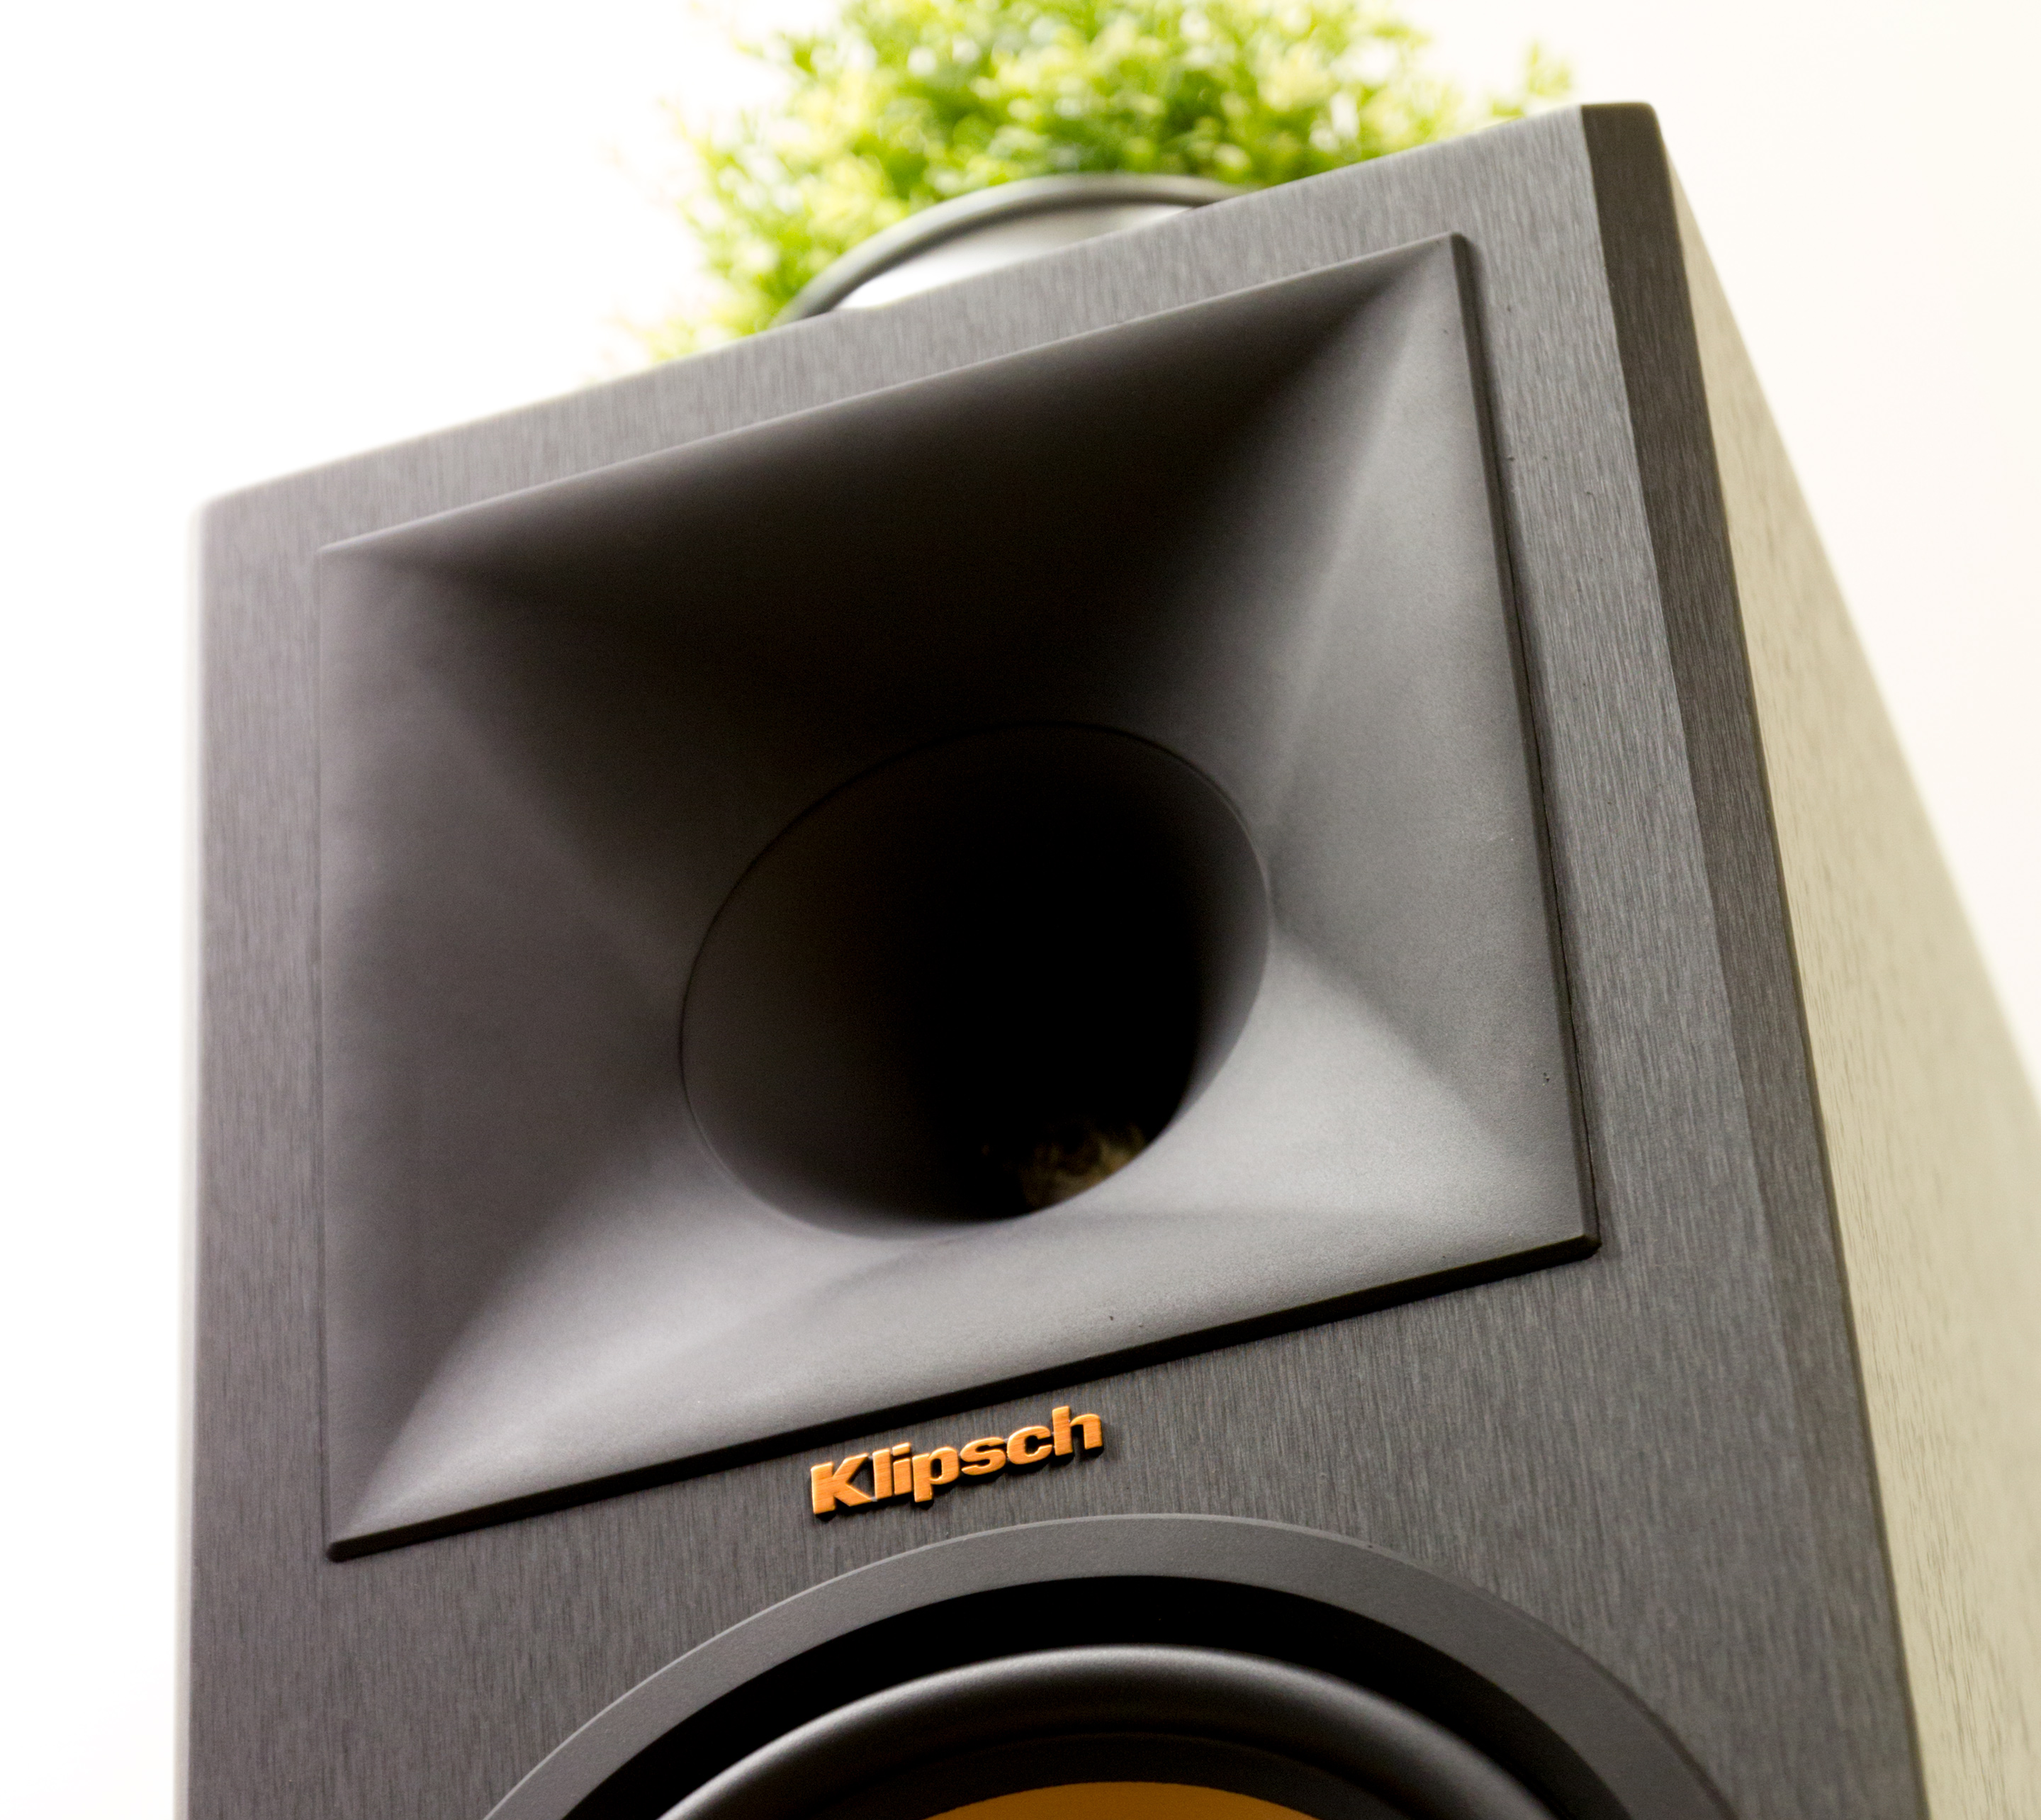 Review: Klipsch RP-280F, RP-160M and RP-540C speakers - Son-Vidéo